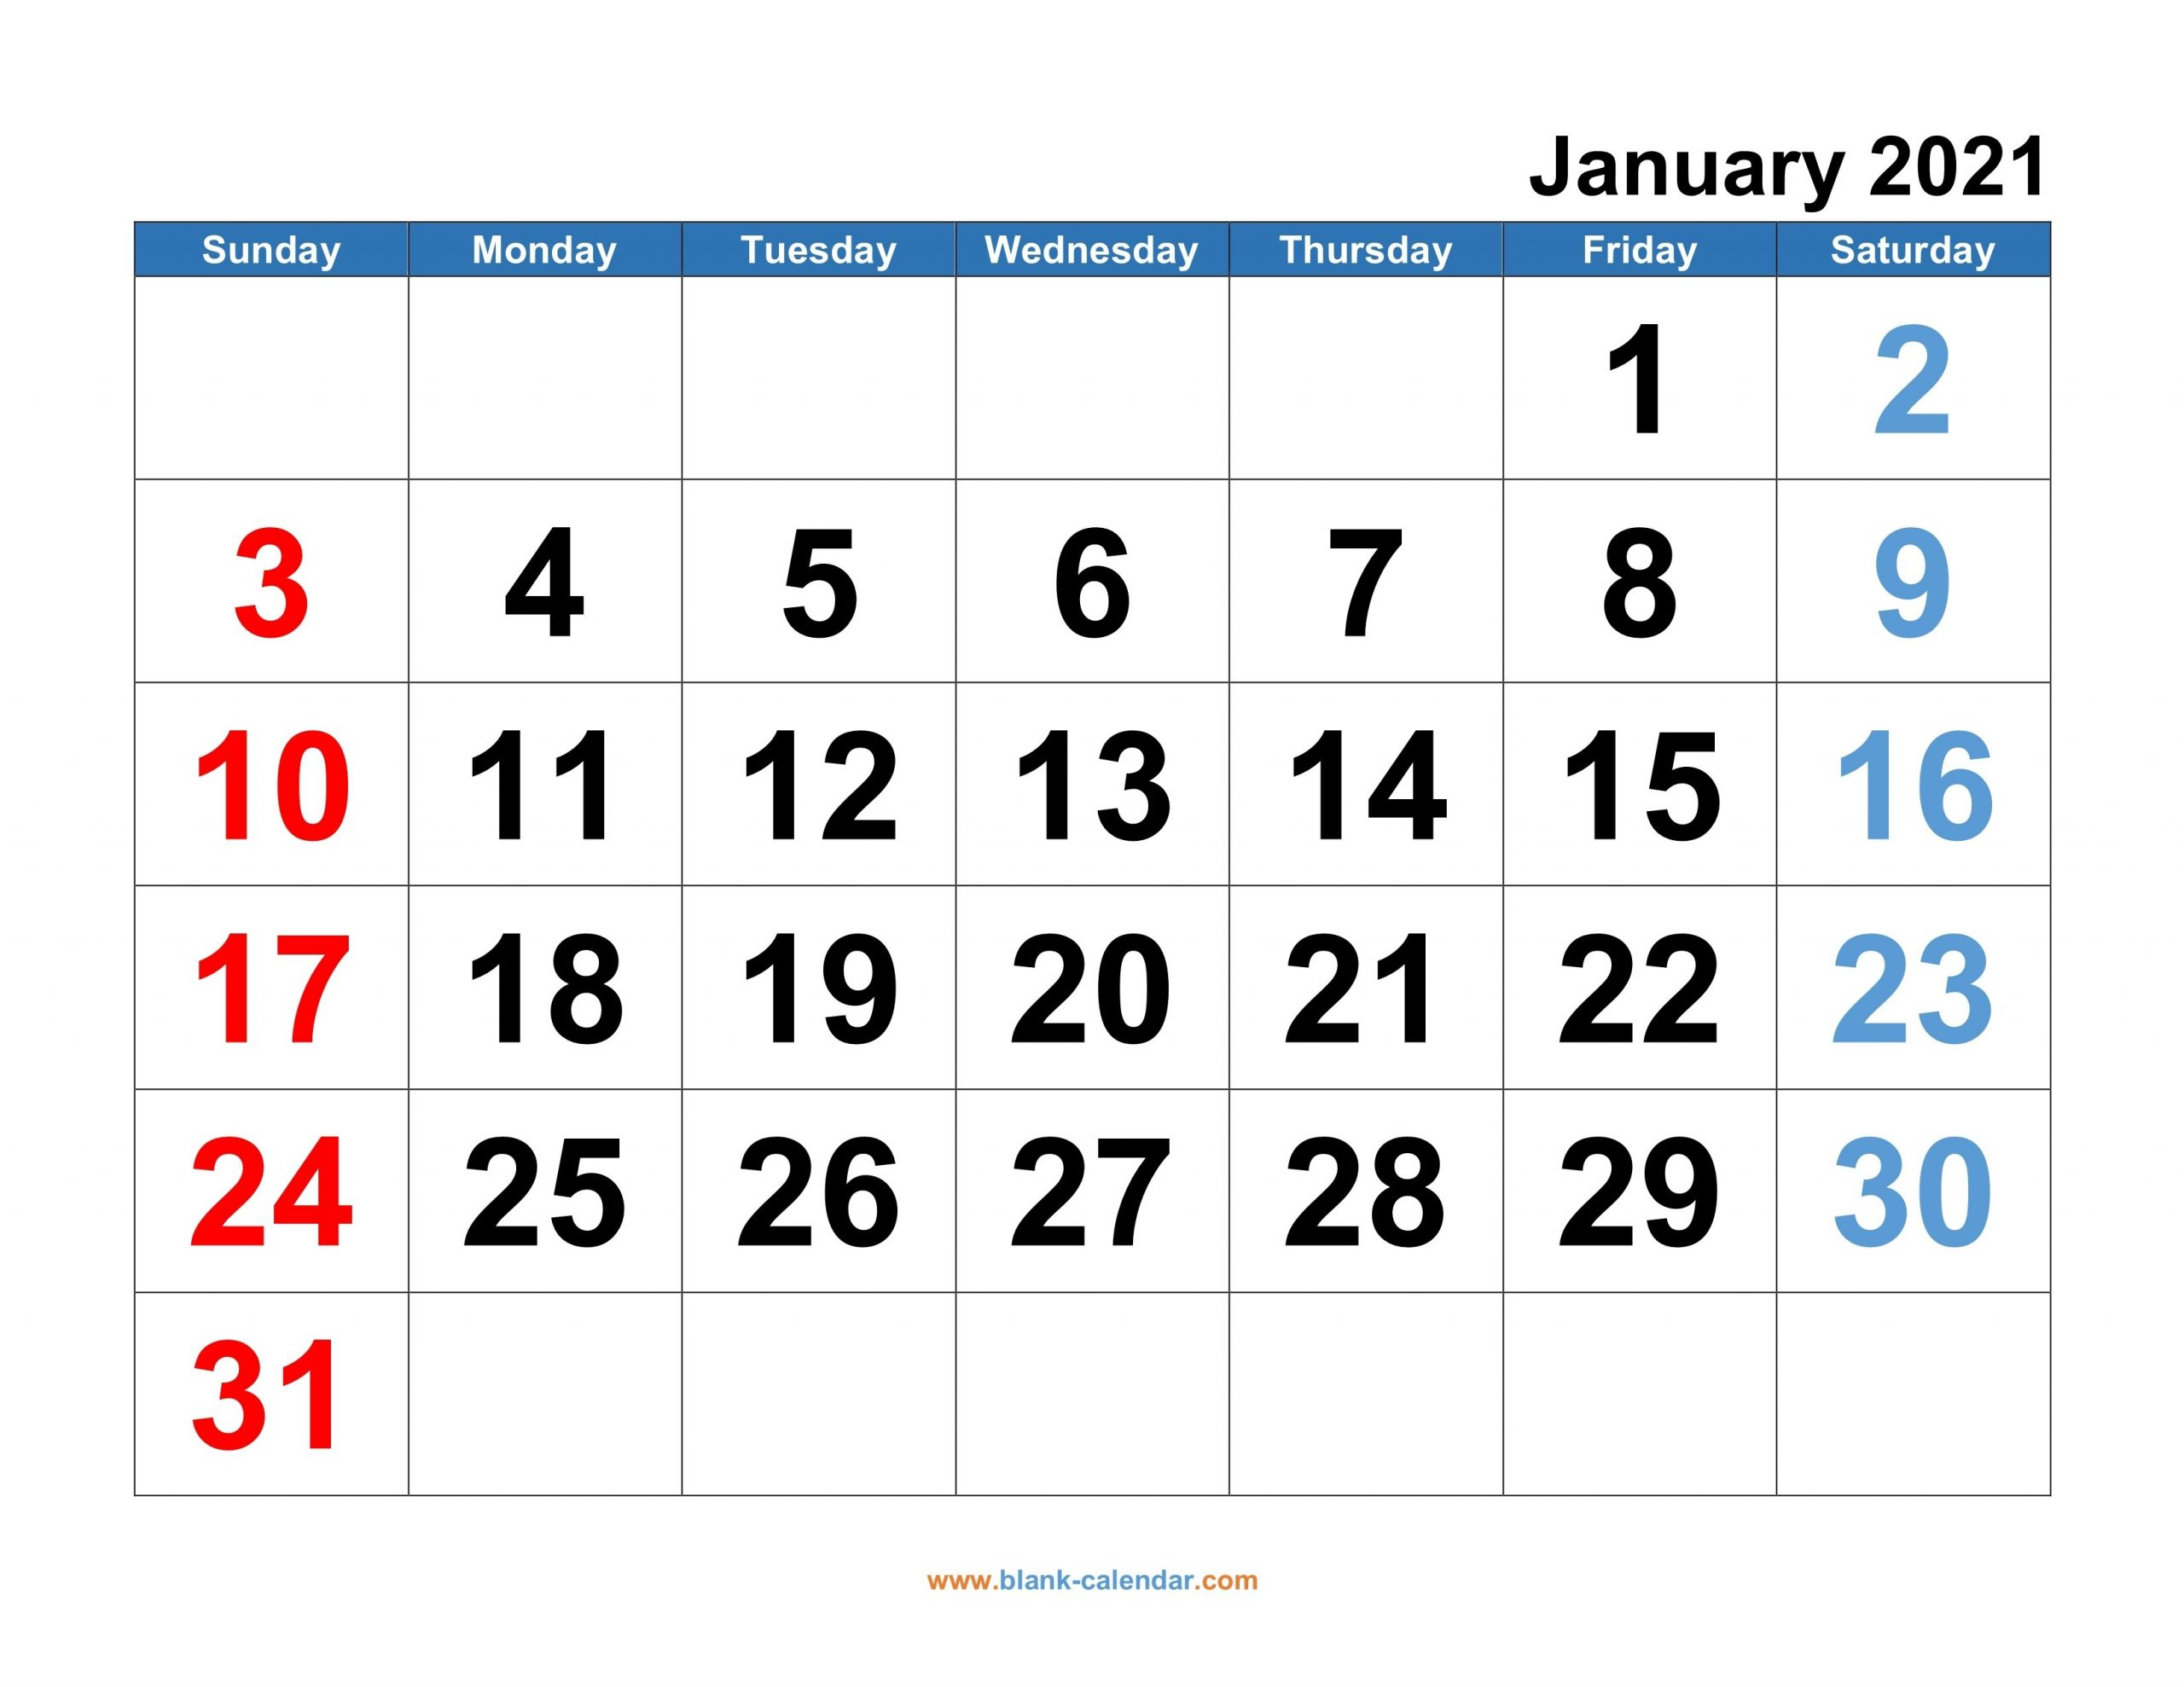 Monthly Calendar 2021   Free Download, Editable And Printable inside 2021 Calendar With Numbered Days Photo